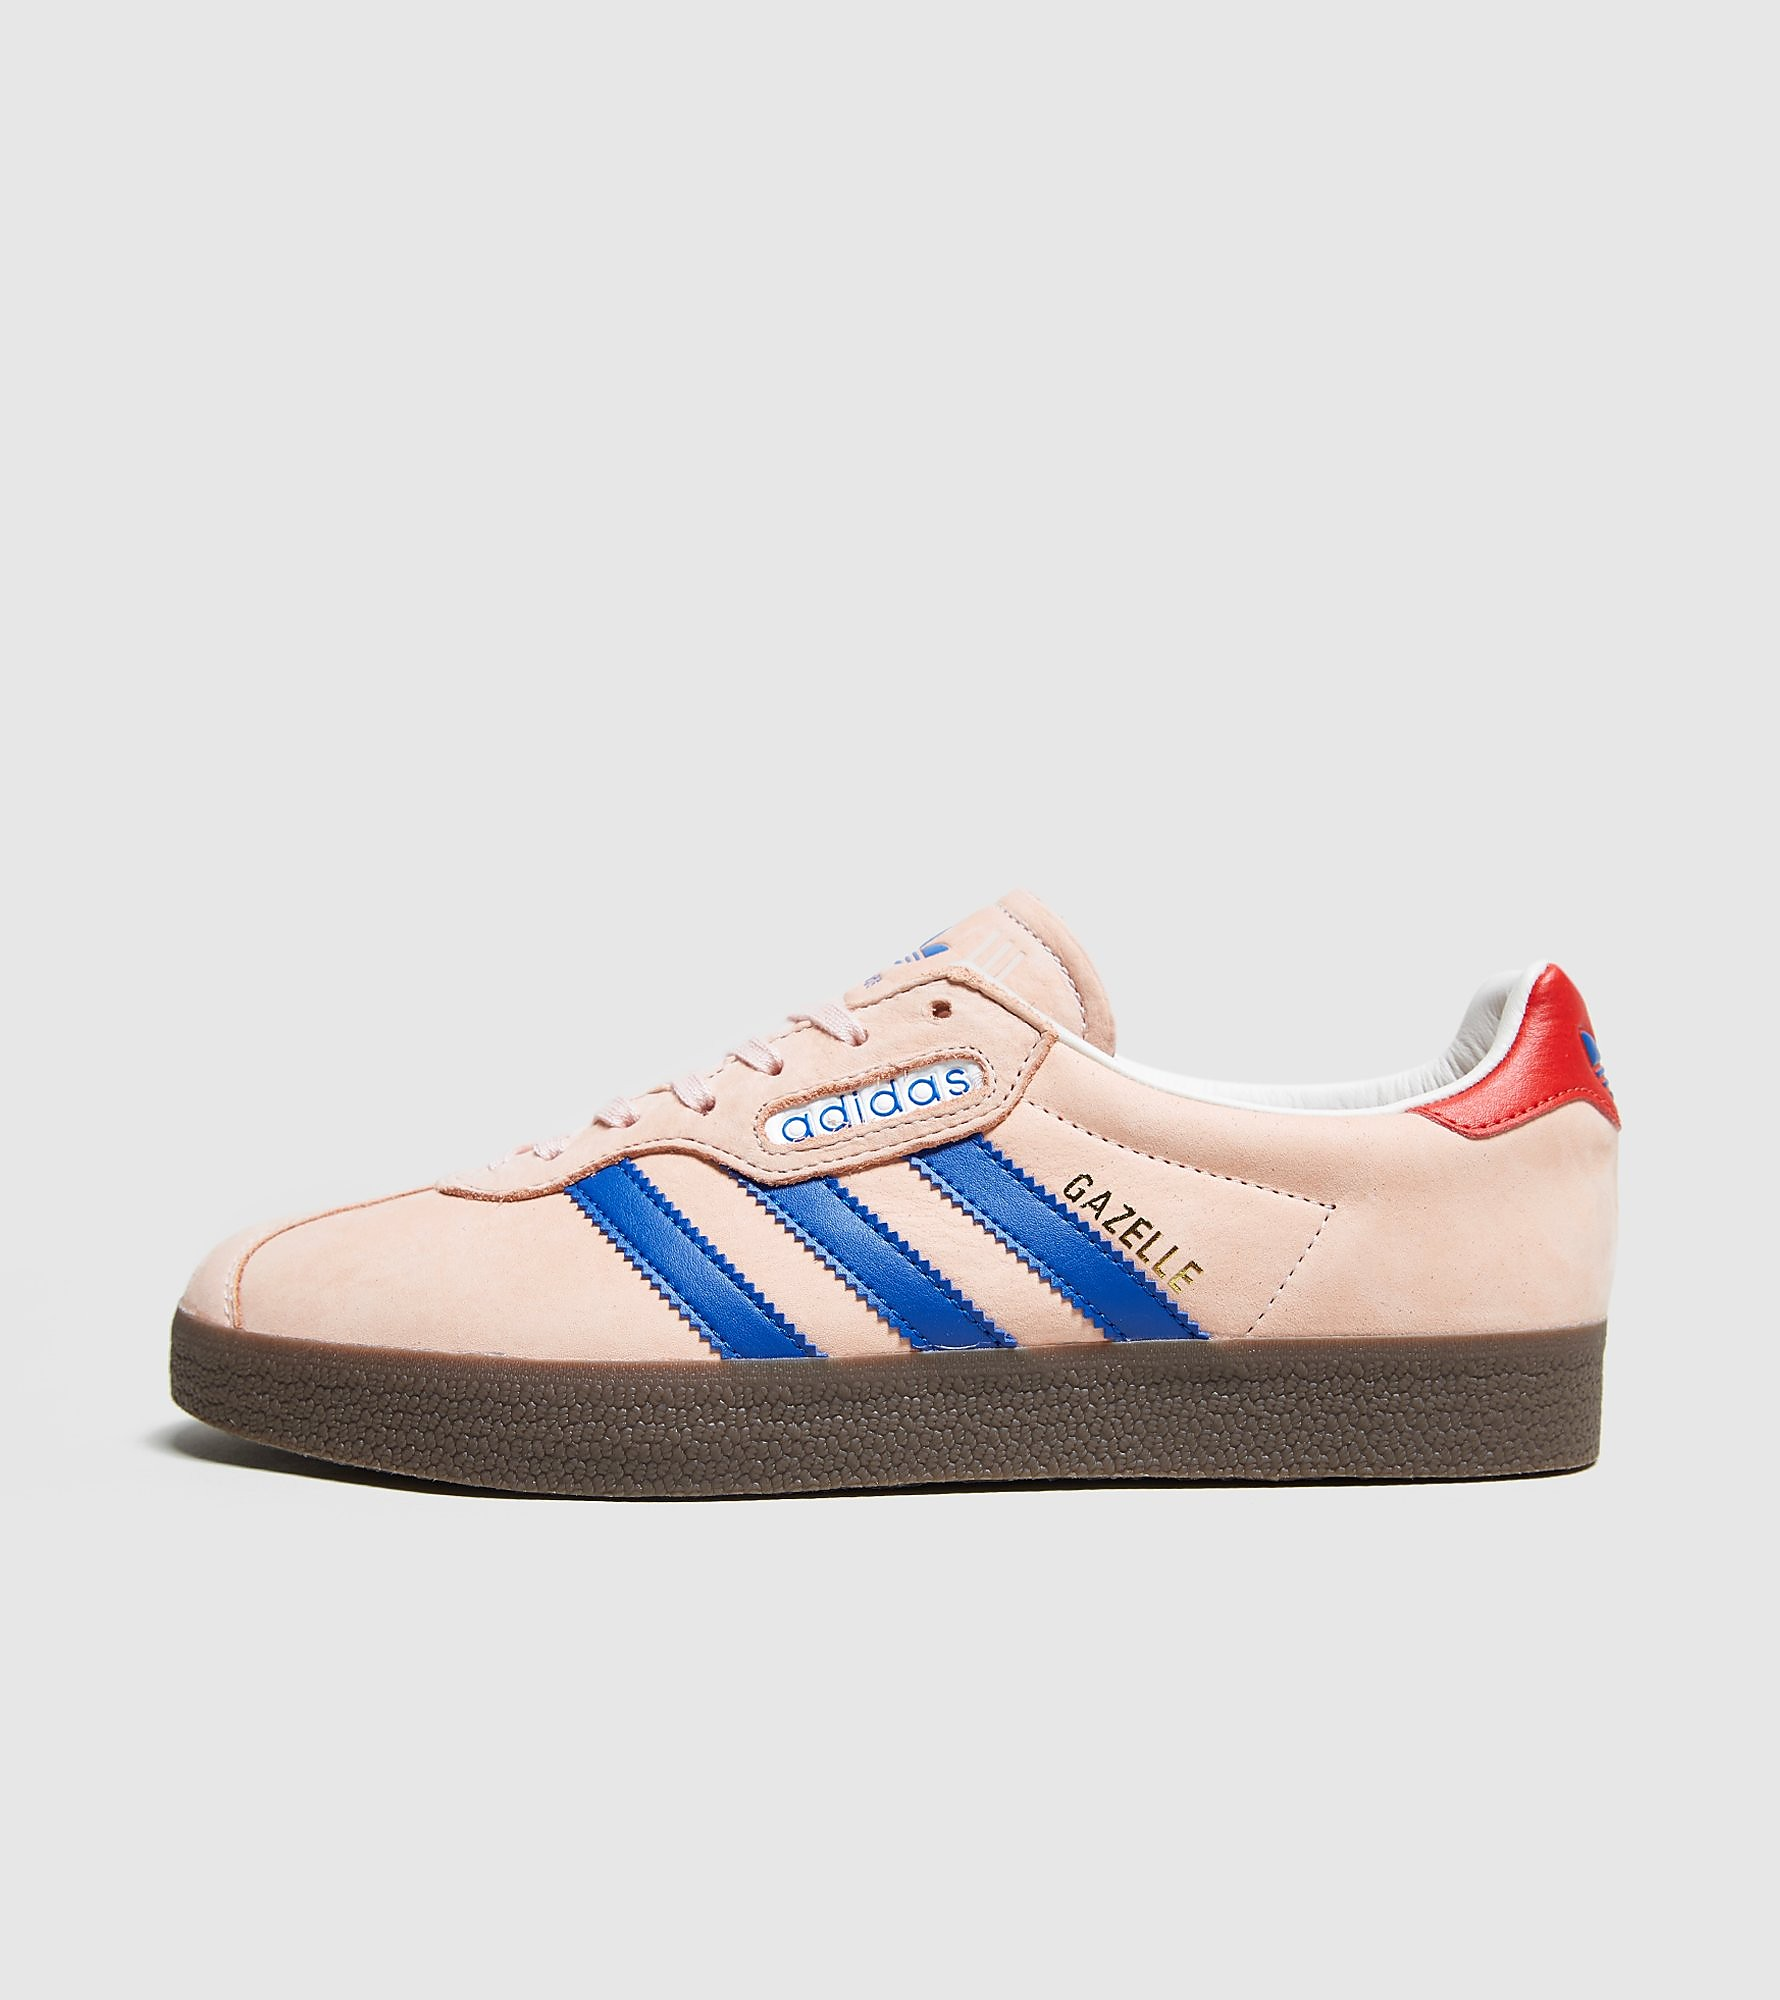 adidas Originals London to Manchester Gazelle Super size? Exclusive